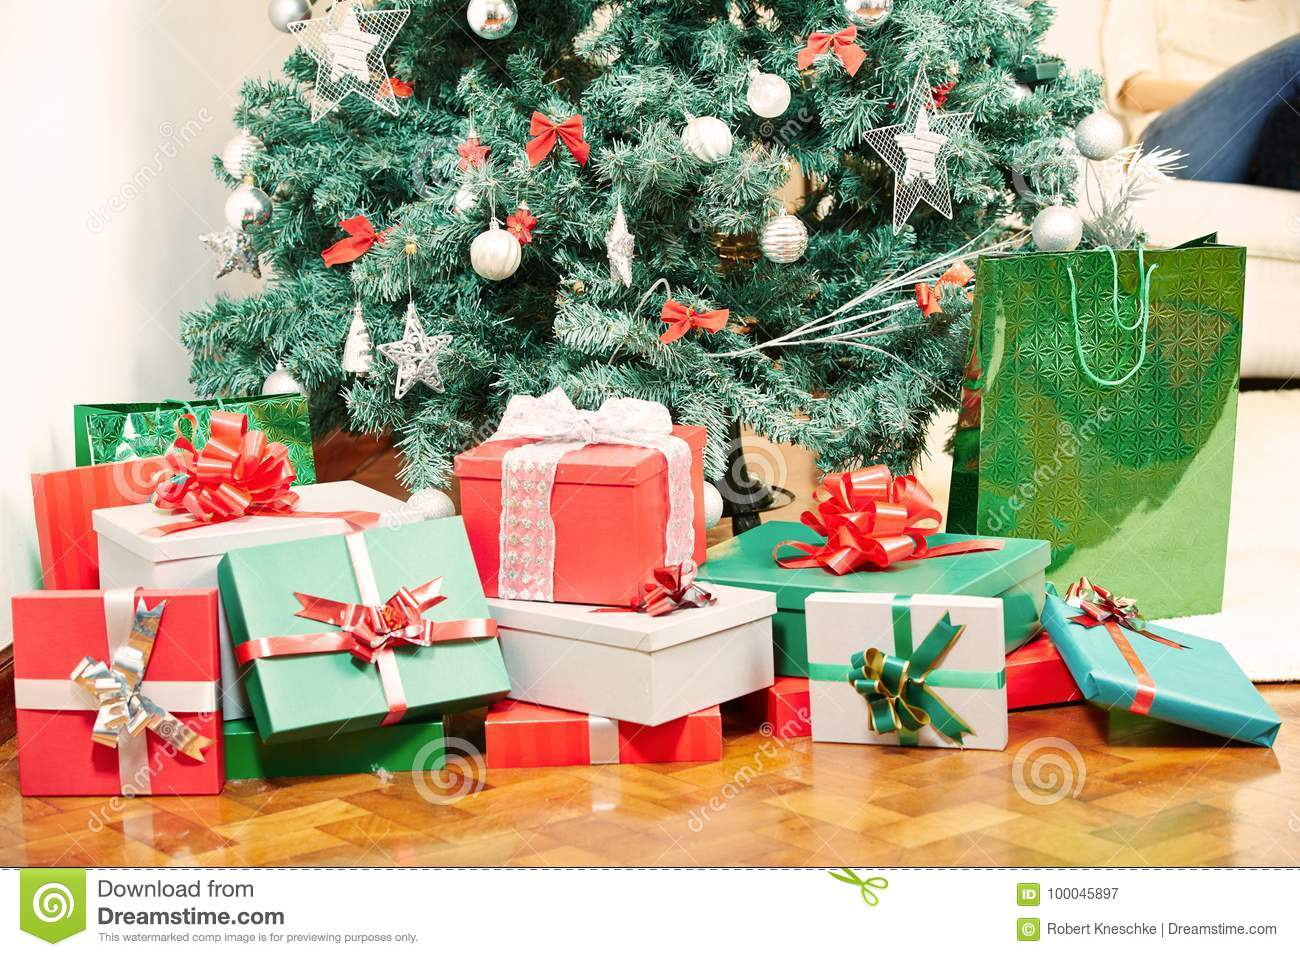 many gifts under christmas tree - How Many Gifts For Christmas